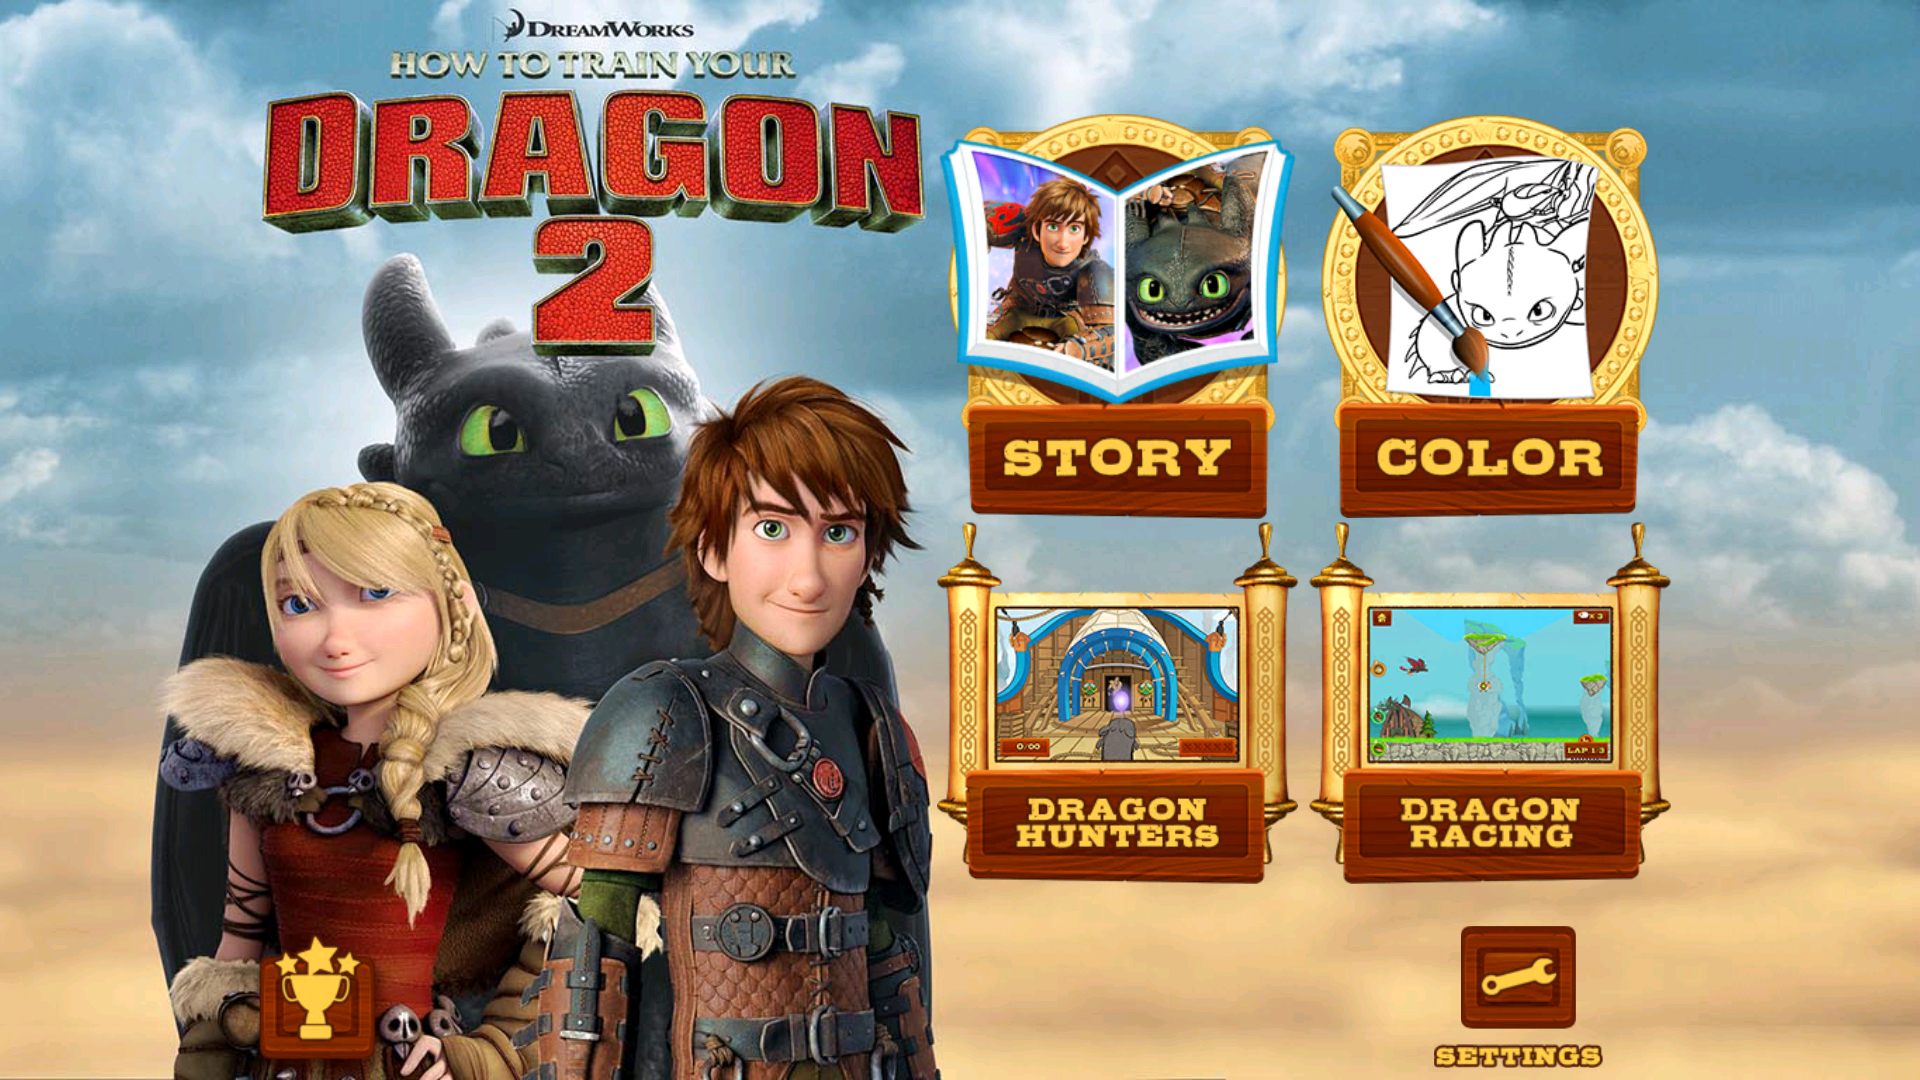 How To Train Your Dragon 2 Android Games Download Free How To Train Your Dragon 2